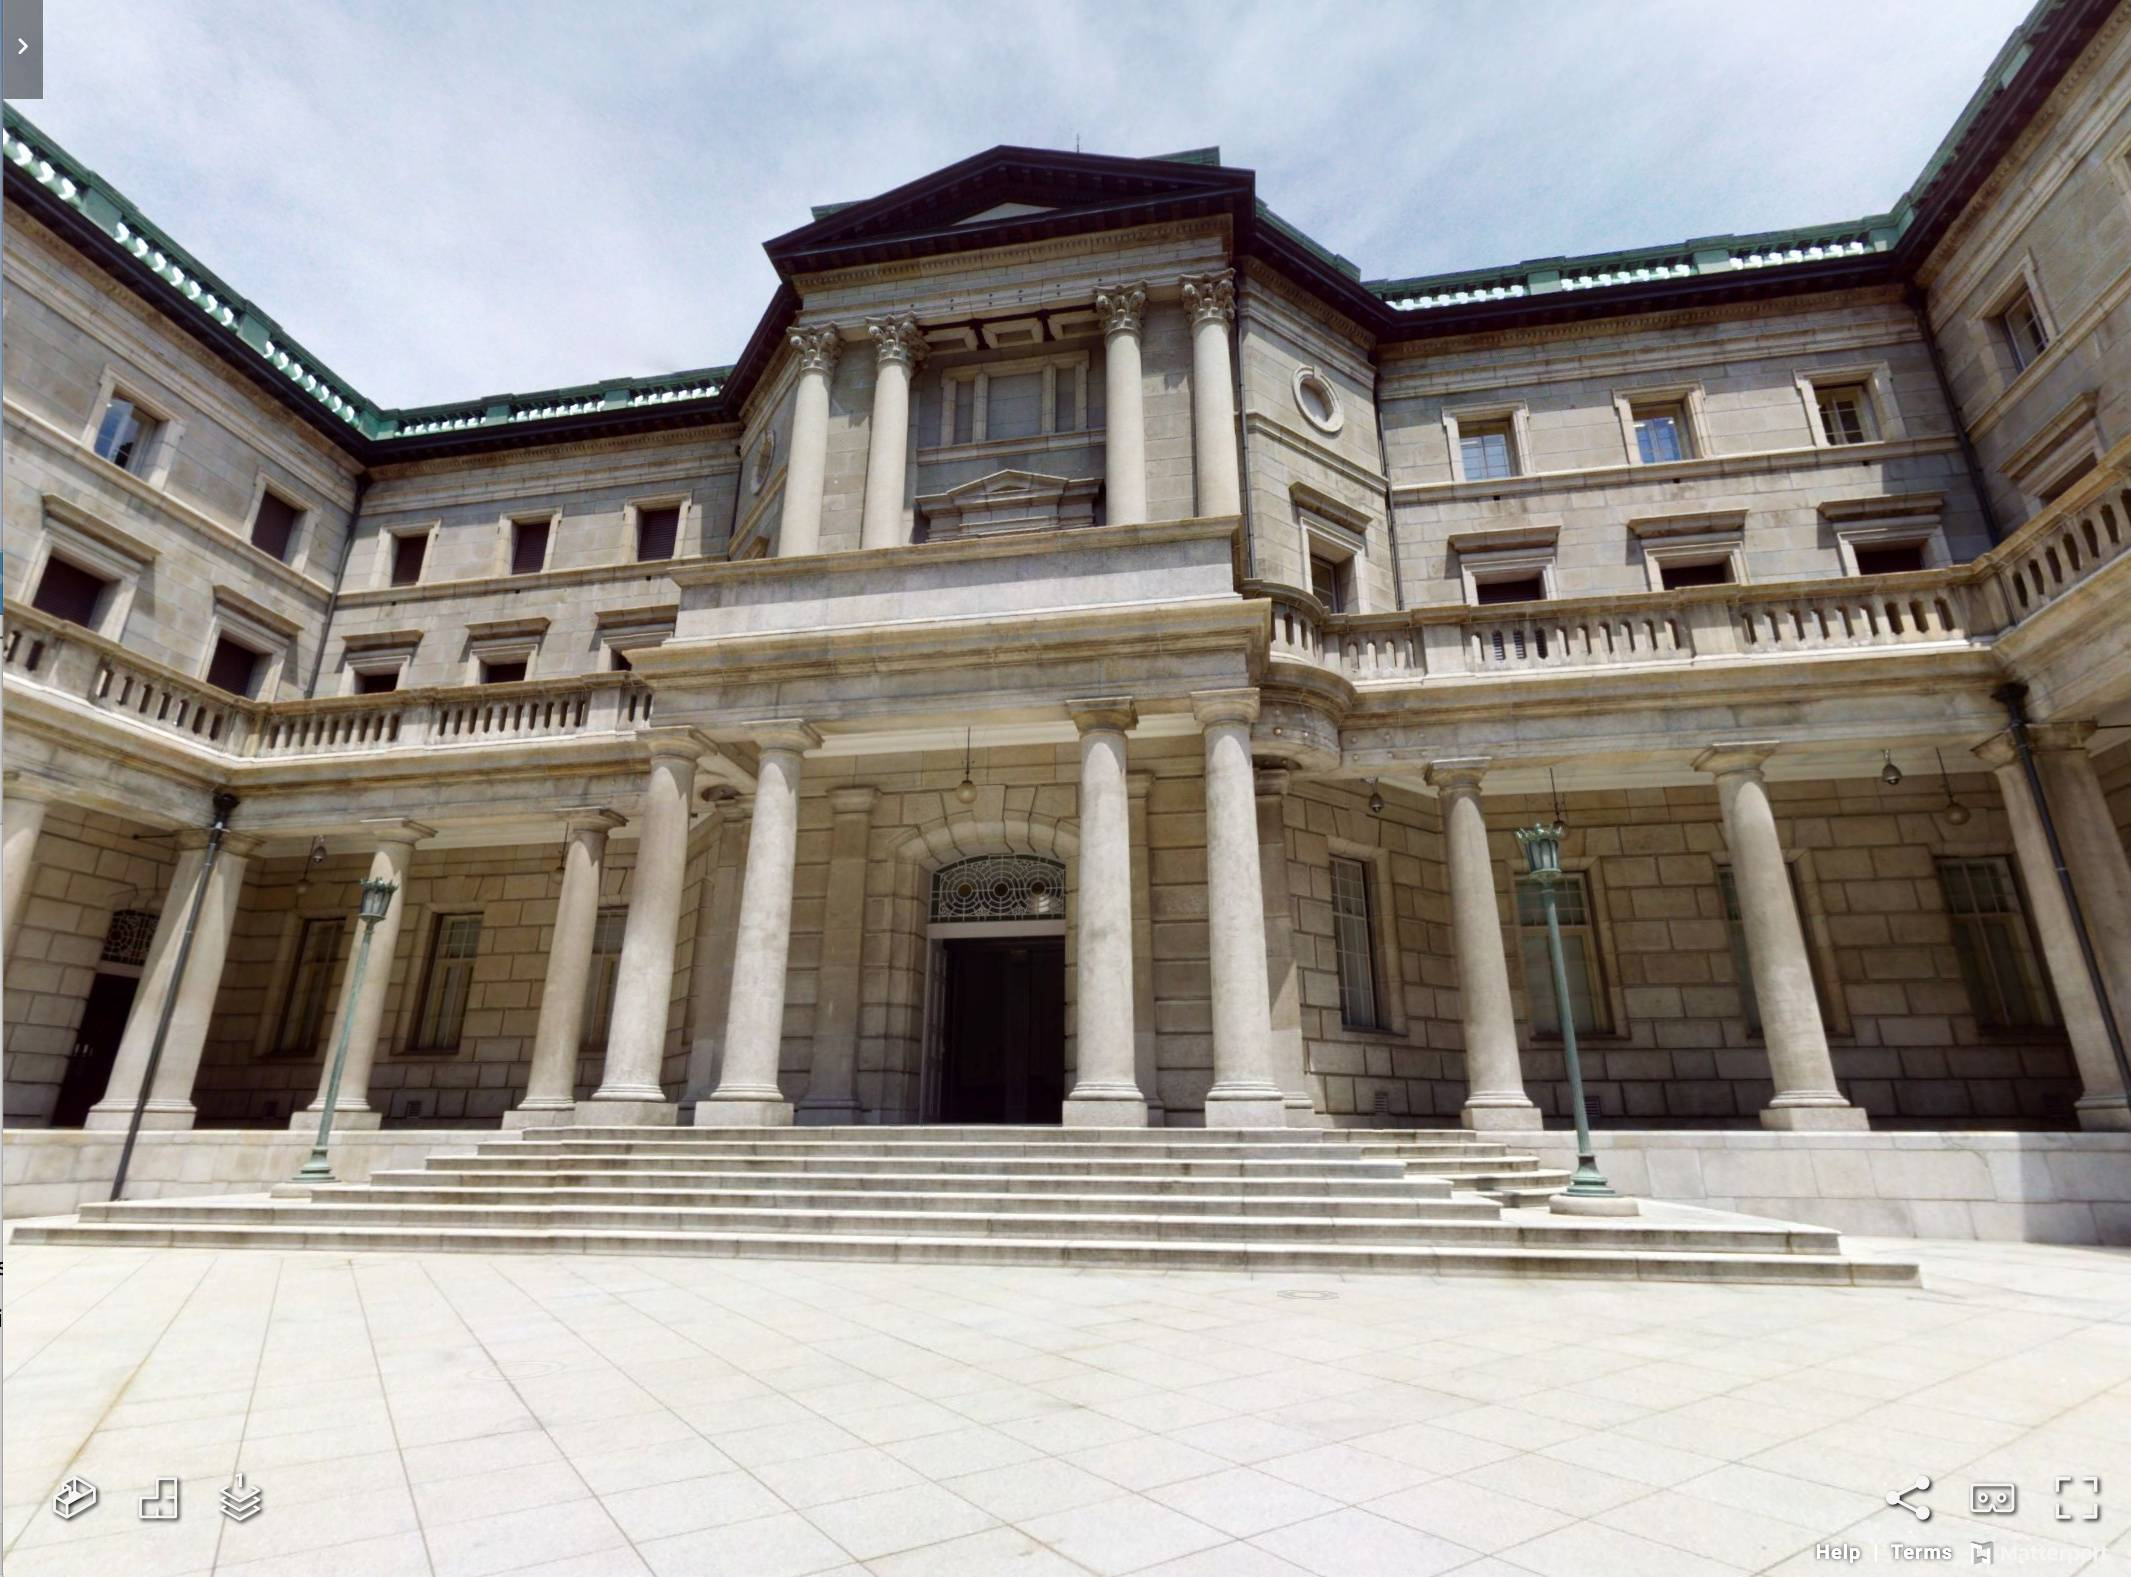 A view of a Bank of Japan building is seen in this screen grab from a virtual reality tour. | VIRTUAL REALITY INNOVATION ORGANIZATION / VIA REUTERS